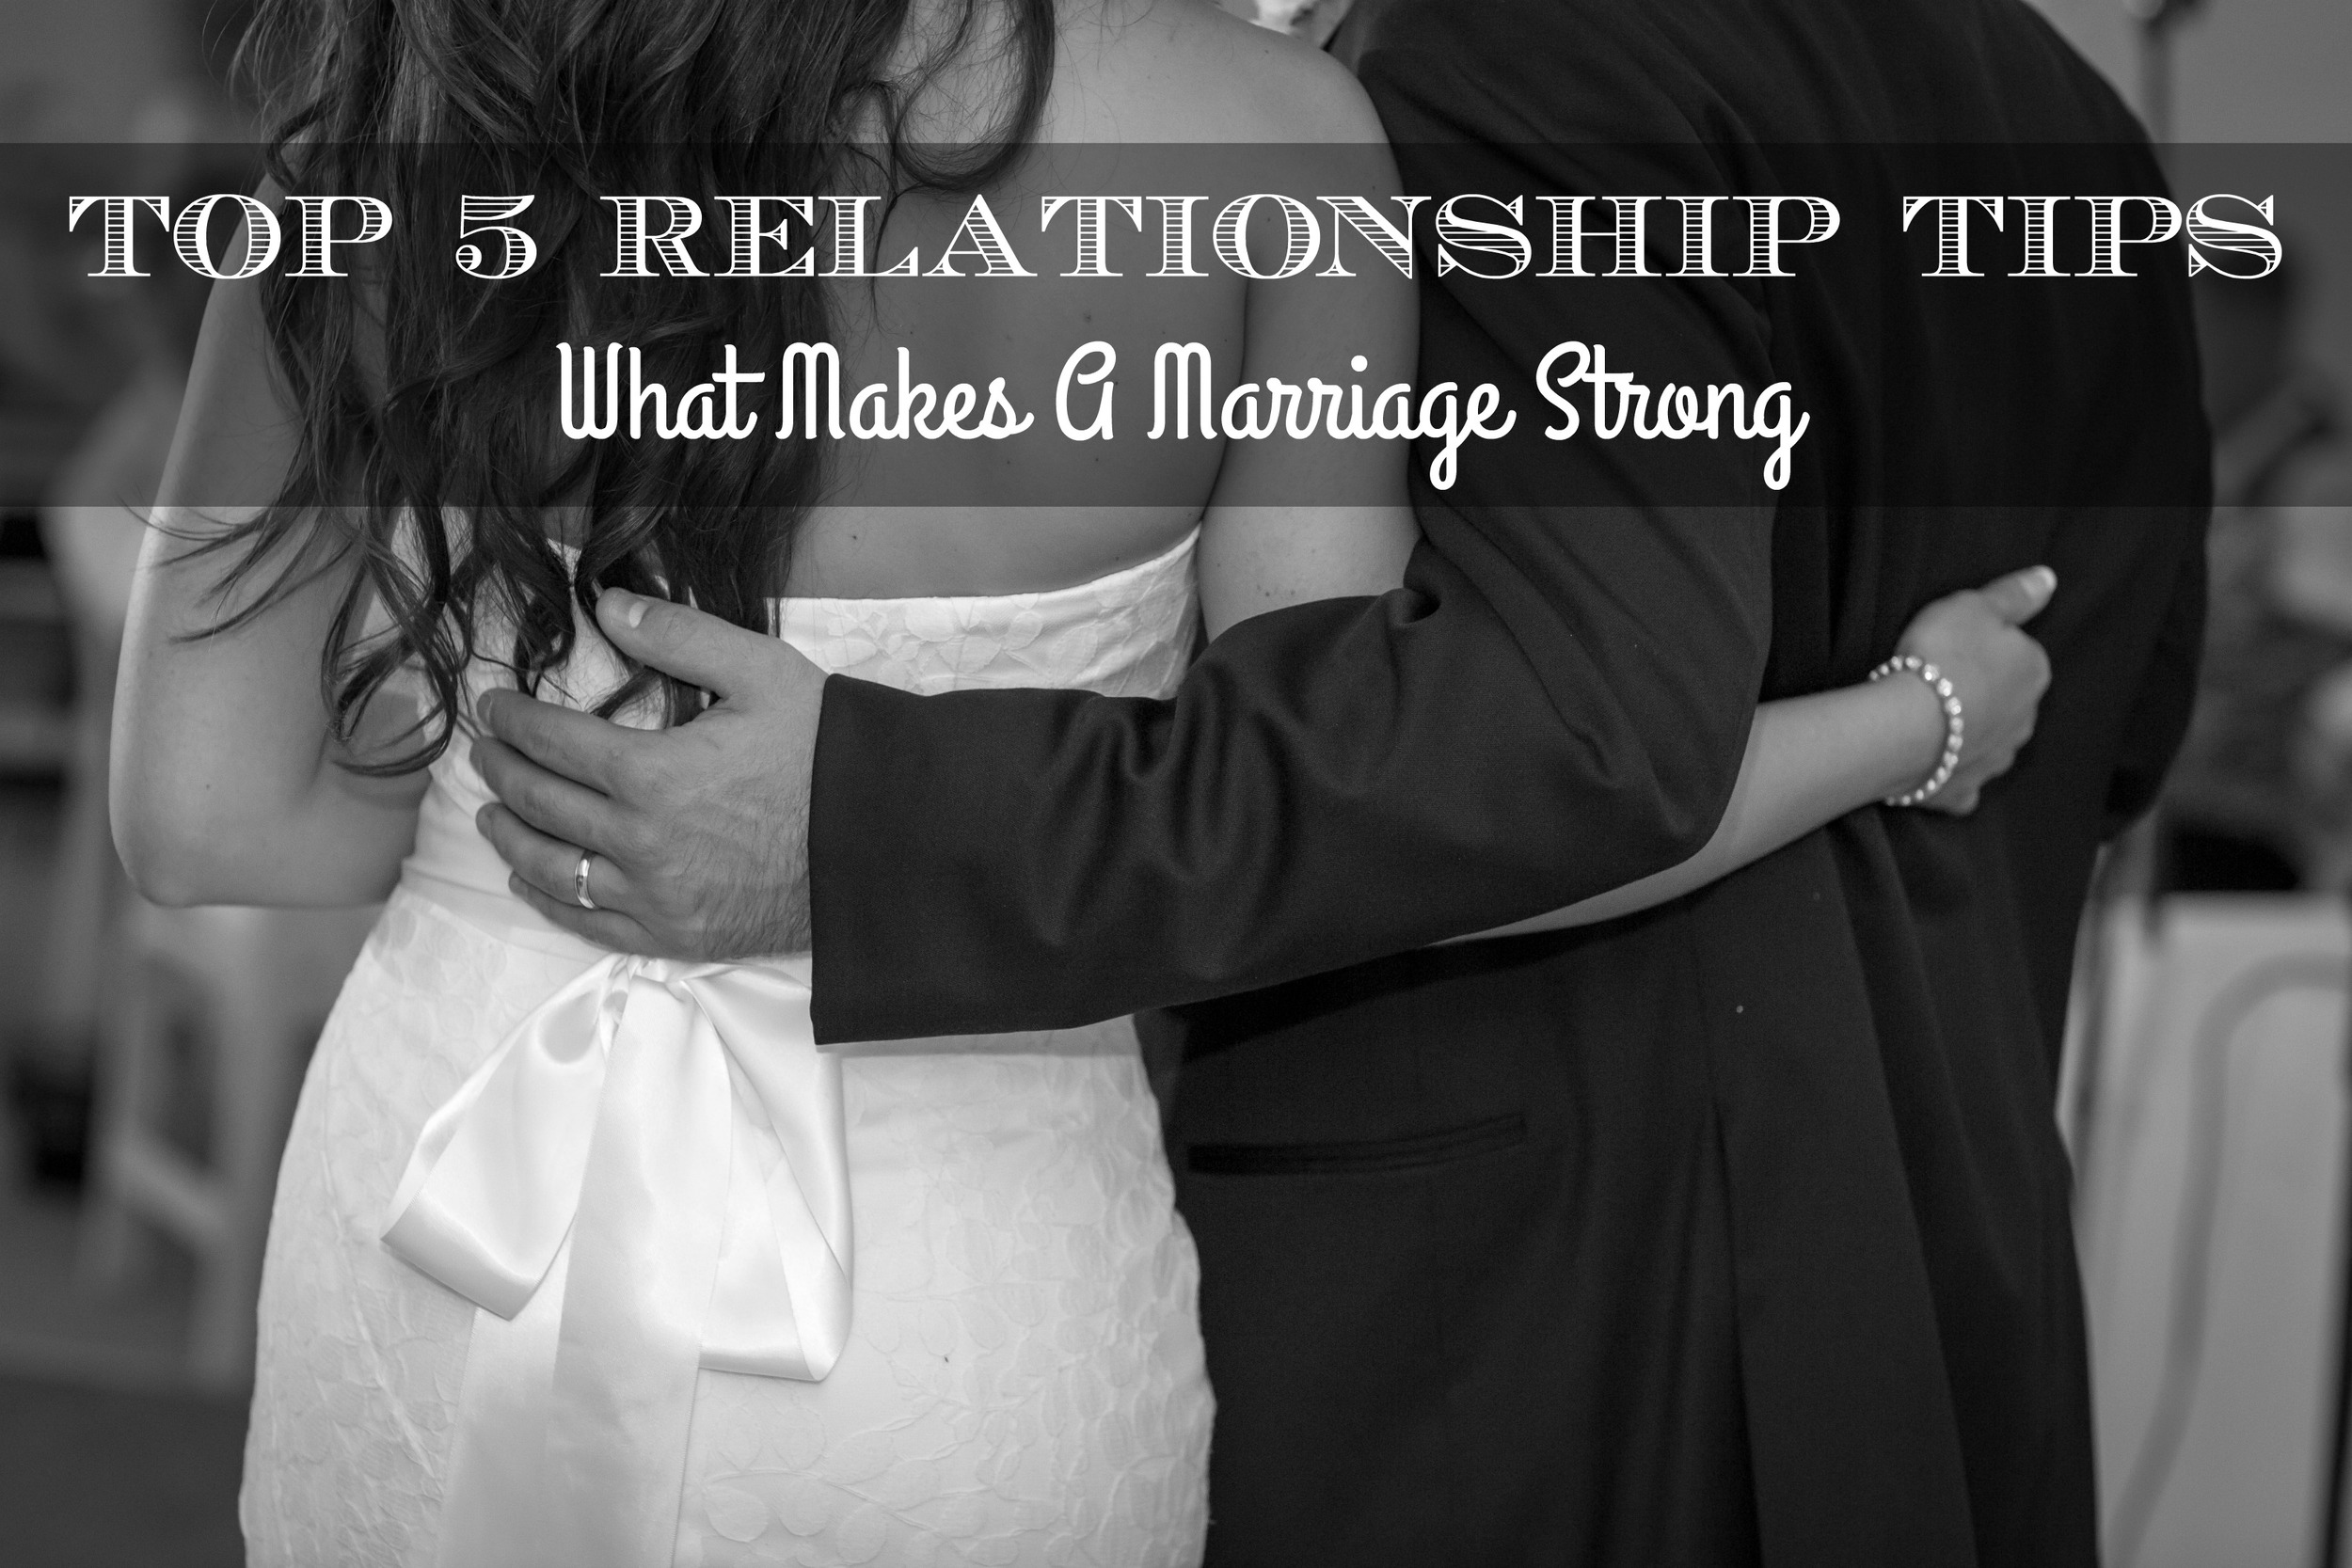 top 5 relationship tips : making a marriage strong